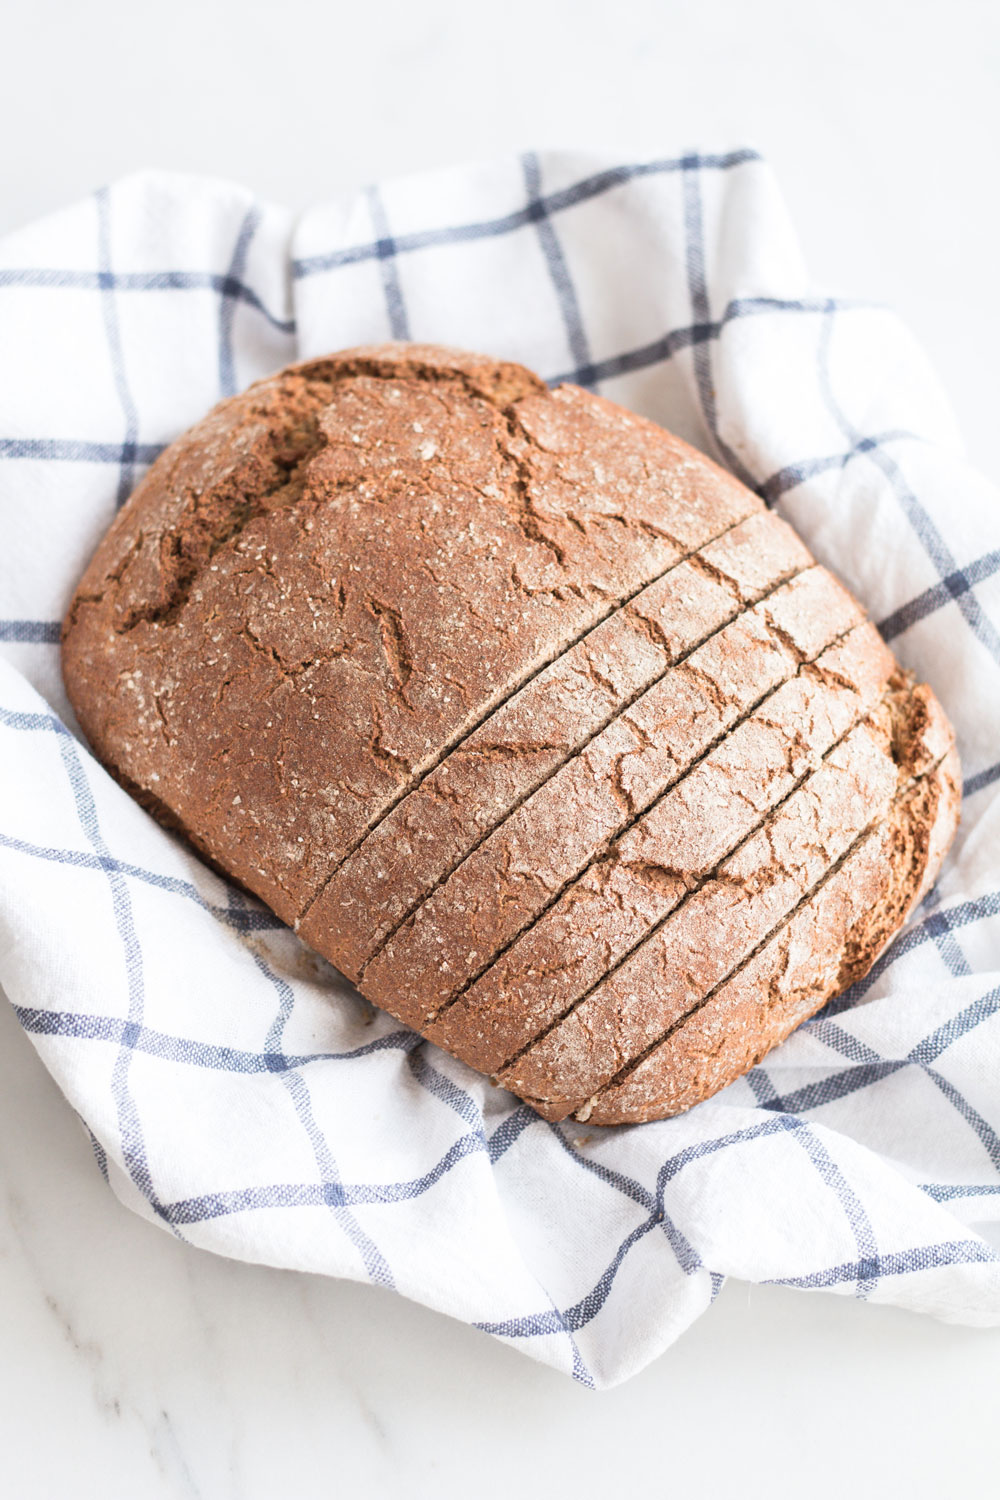 This homemade Mediterranean-style crusty Bread doesn't require more than 2 minutes of kneading and it's low in gluten and high in protein and flavor! https://www.spotebi.com/recipes/homemade-mediterranean-style-crusty-bread/